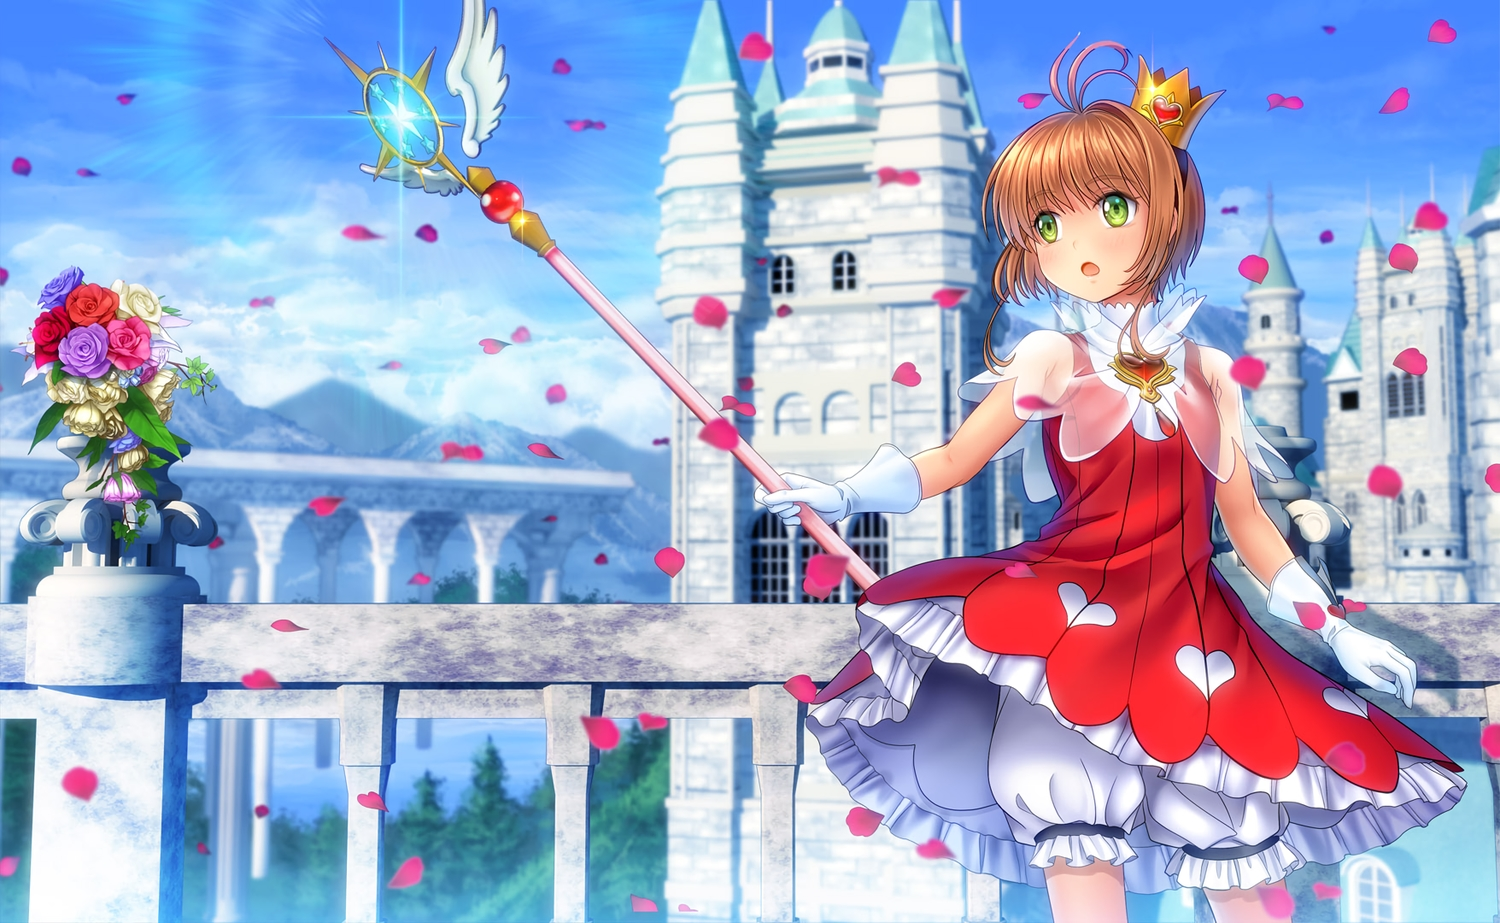 bloomers brown_hair building card_captor_sakura clouds crown dress flowers gloves green_eyes kinomoto_sakura moonknives petals short_hair sky wand